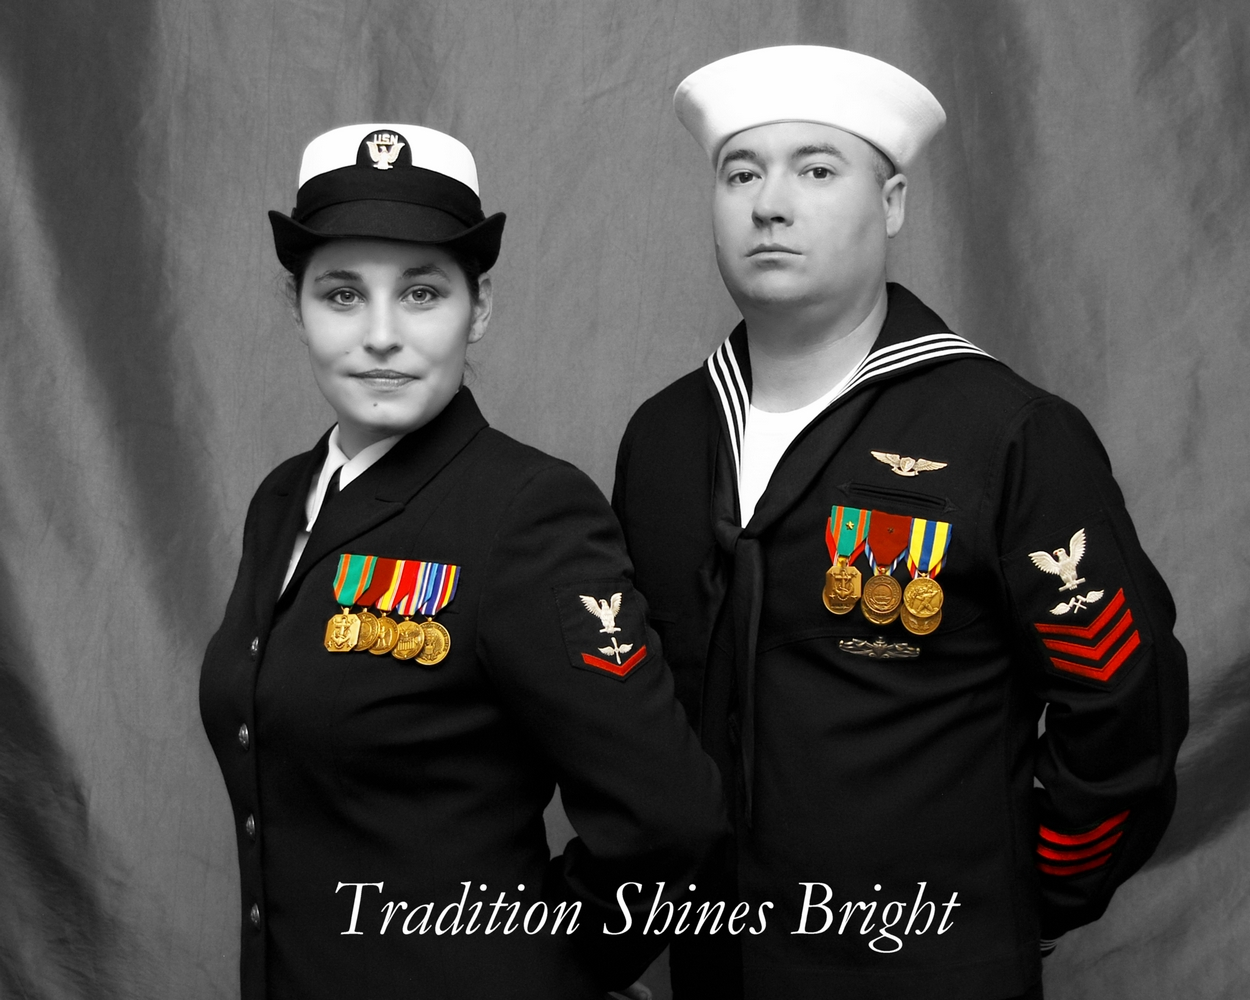 File service dress blues jpg wikimedia commons - File Naval Tradition Stand Proud Jpg